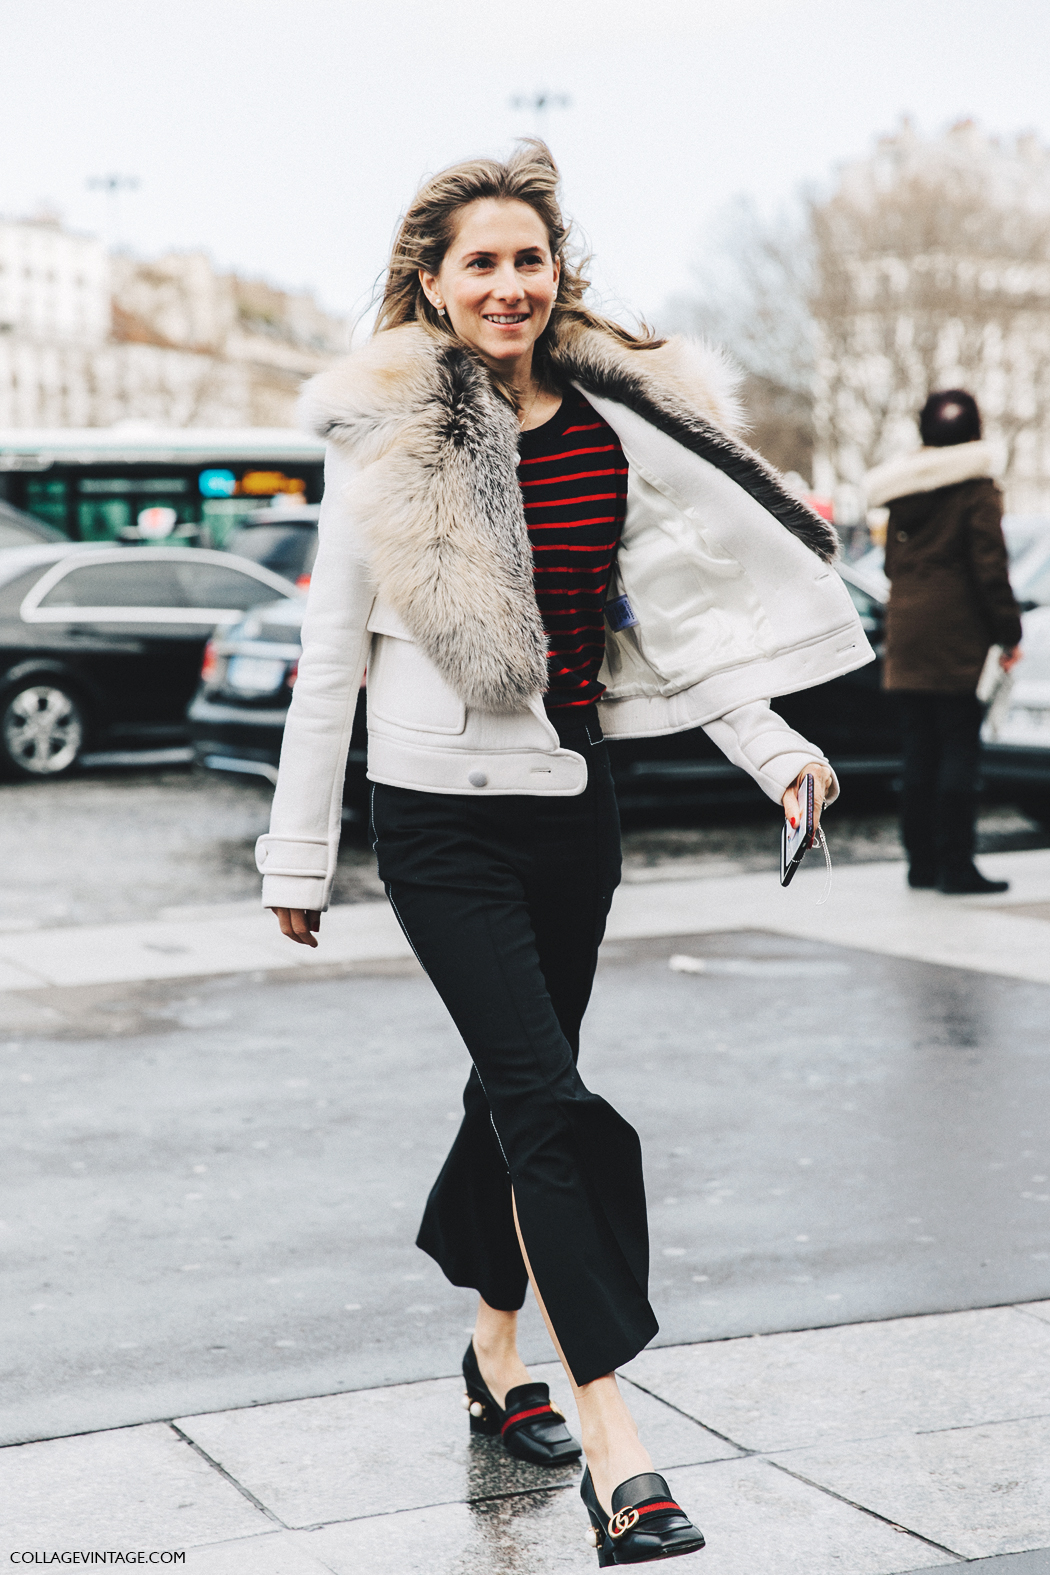 PFW-Paris_Fashion_Week_Fall_2016-Street_Style-Collage_Vintage-Marina_Larraude-Stripes-Gucci-